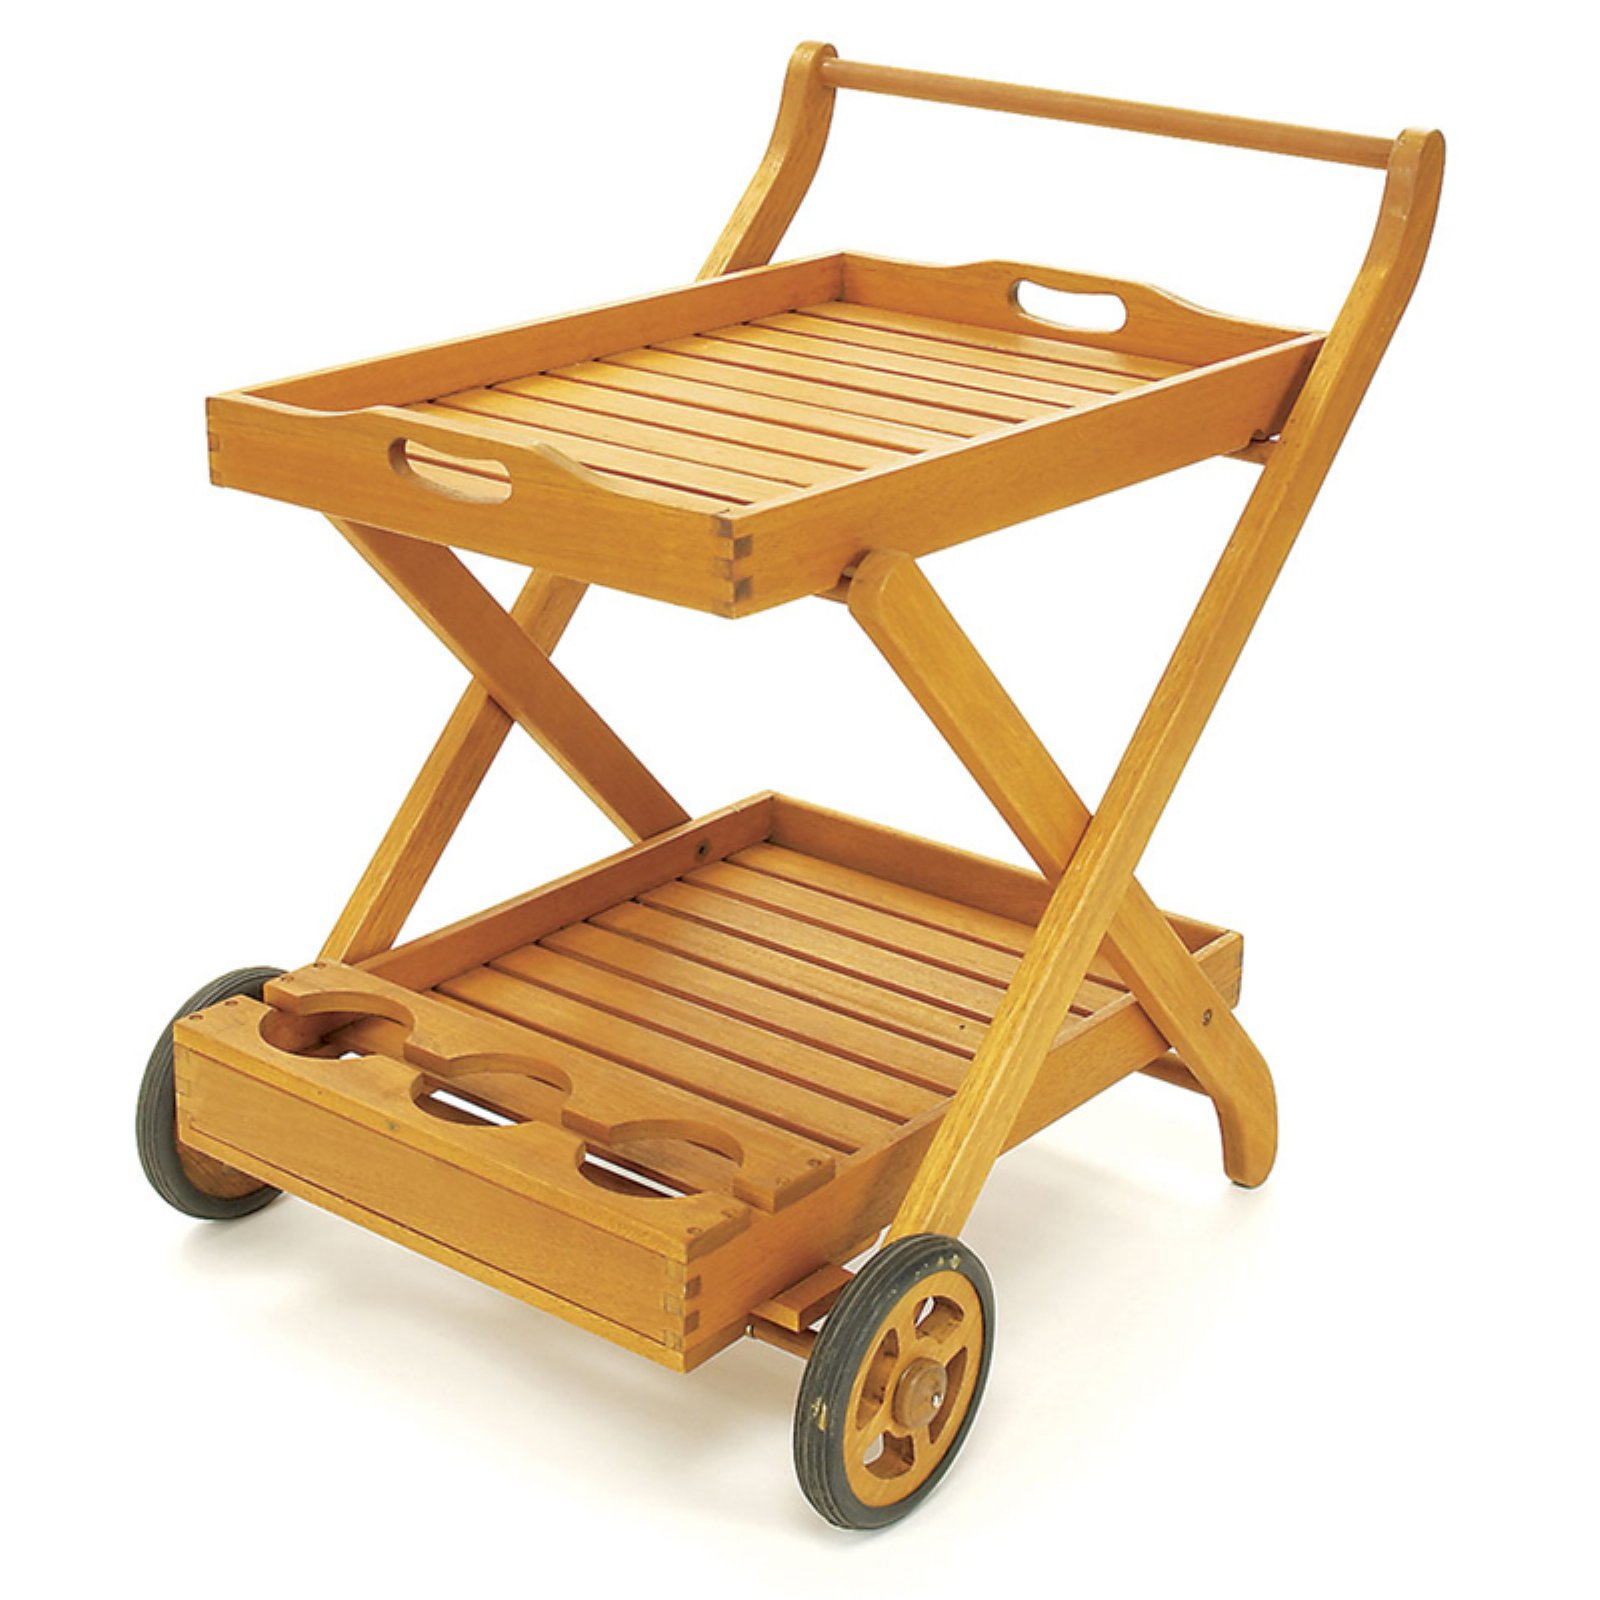 Achla Designs Outdoor Serving Cart with Tray